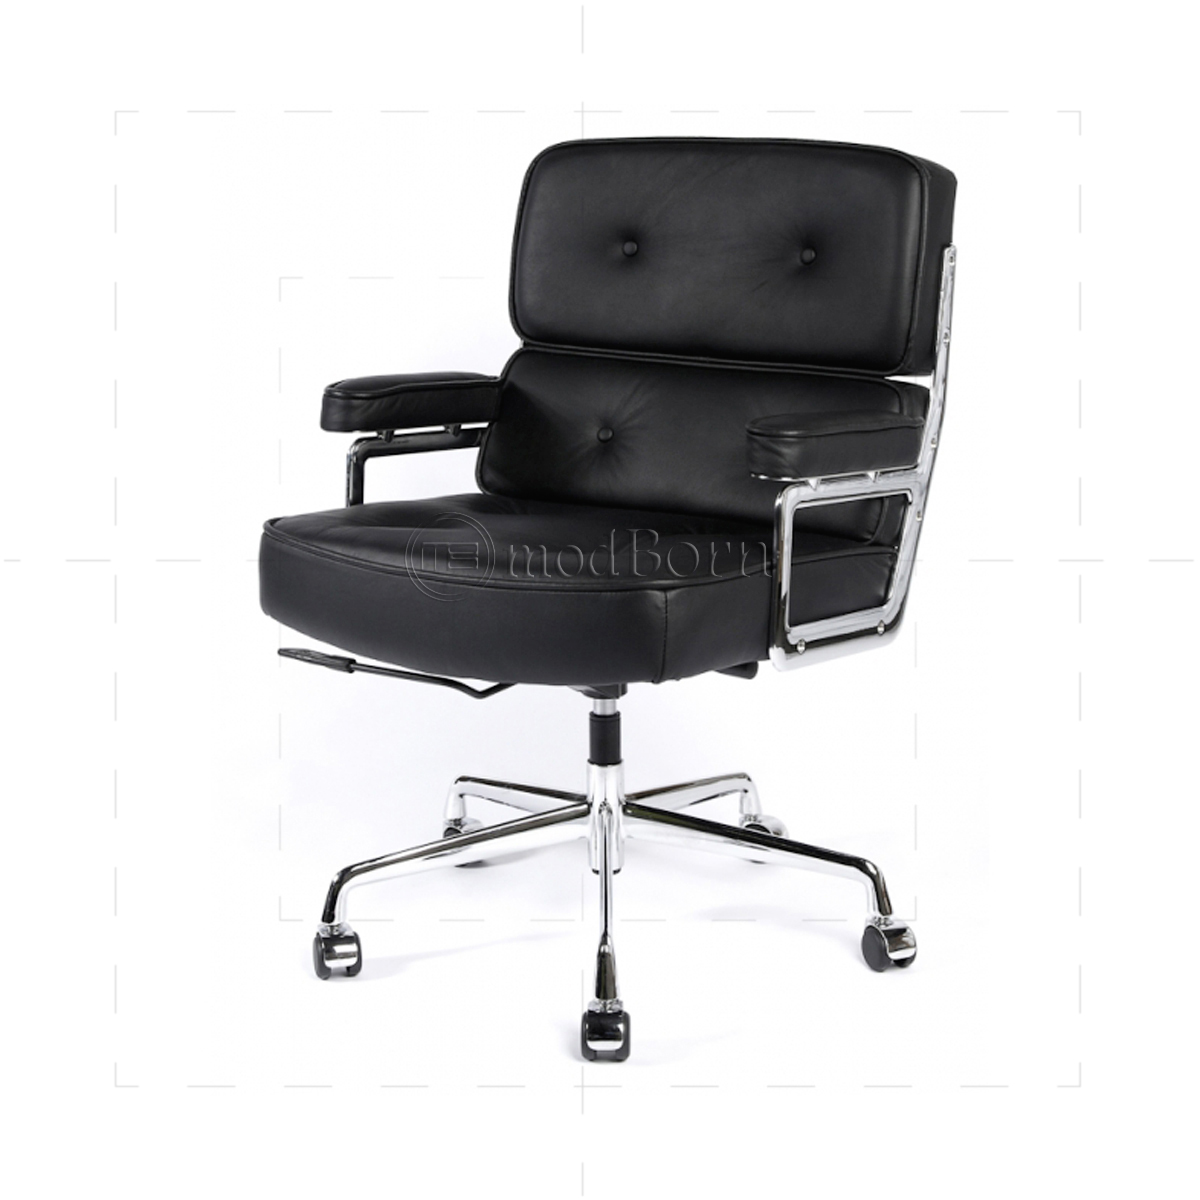 ea104 eames style office lobby black leather executive. Black Bedroom Furniture Sets. Home Design Ideas